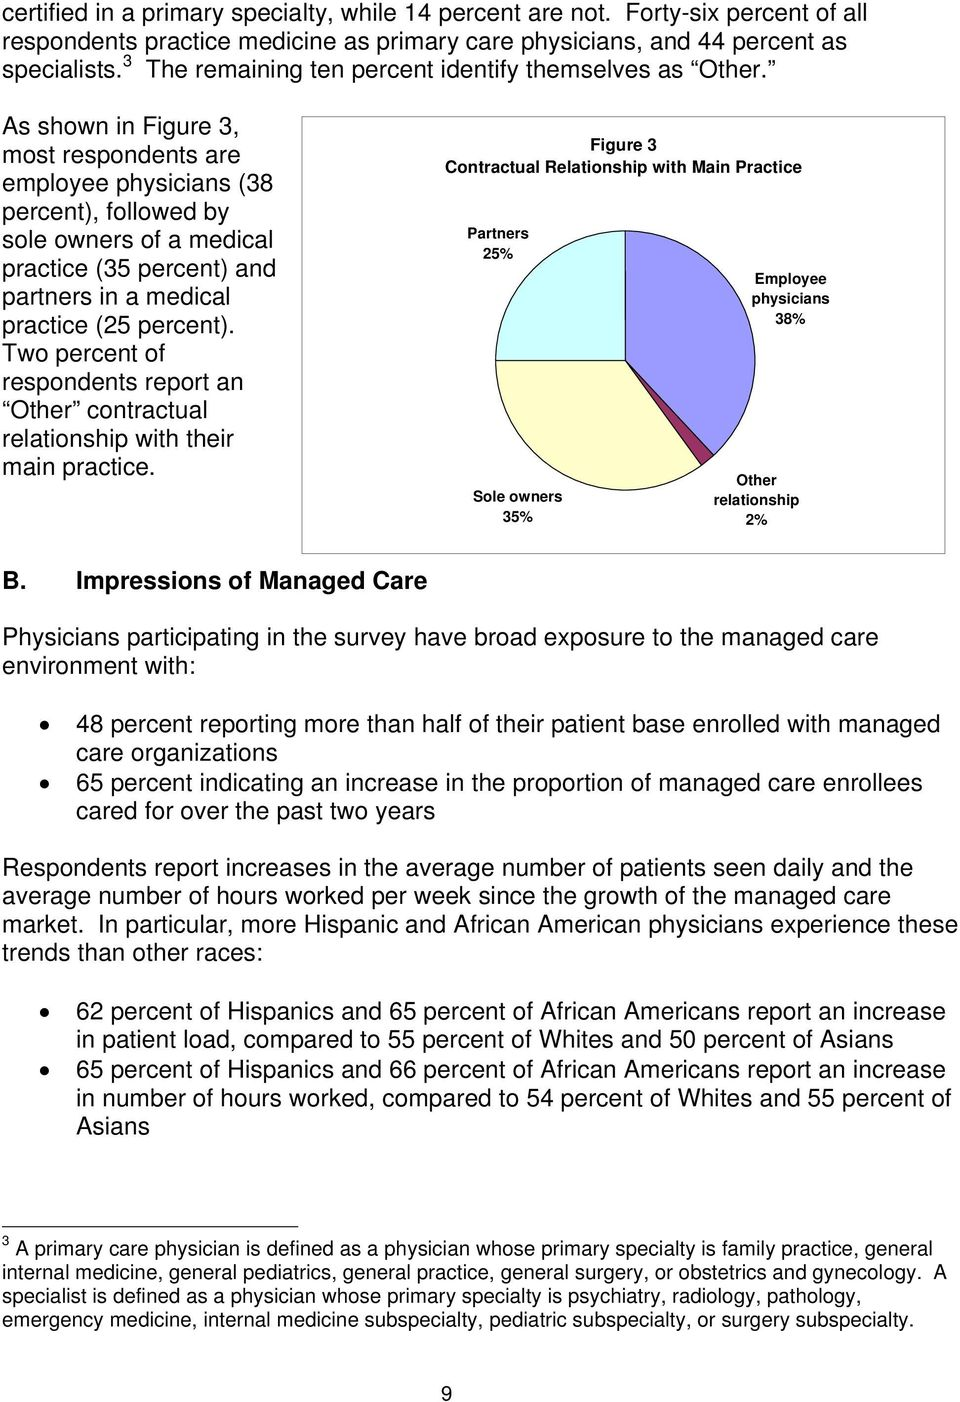 As shown in Figure 3, most respondents are employee physicians (38 percent), followed by sole owners of a medical practice (35 percent) and partners in a medical practice (25 percent).